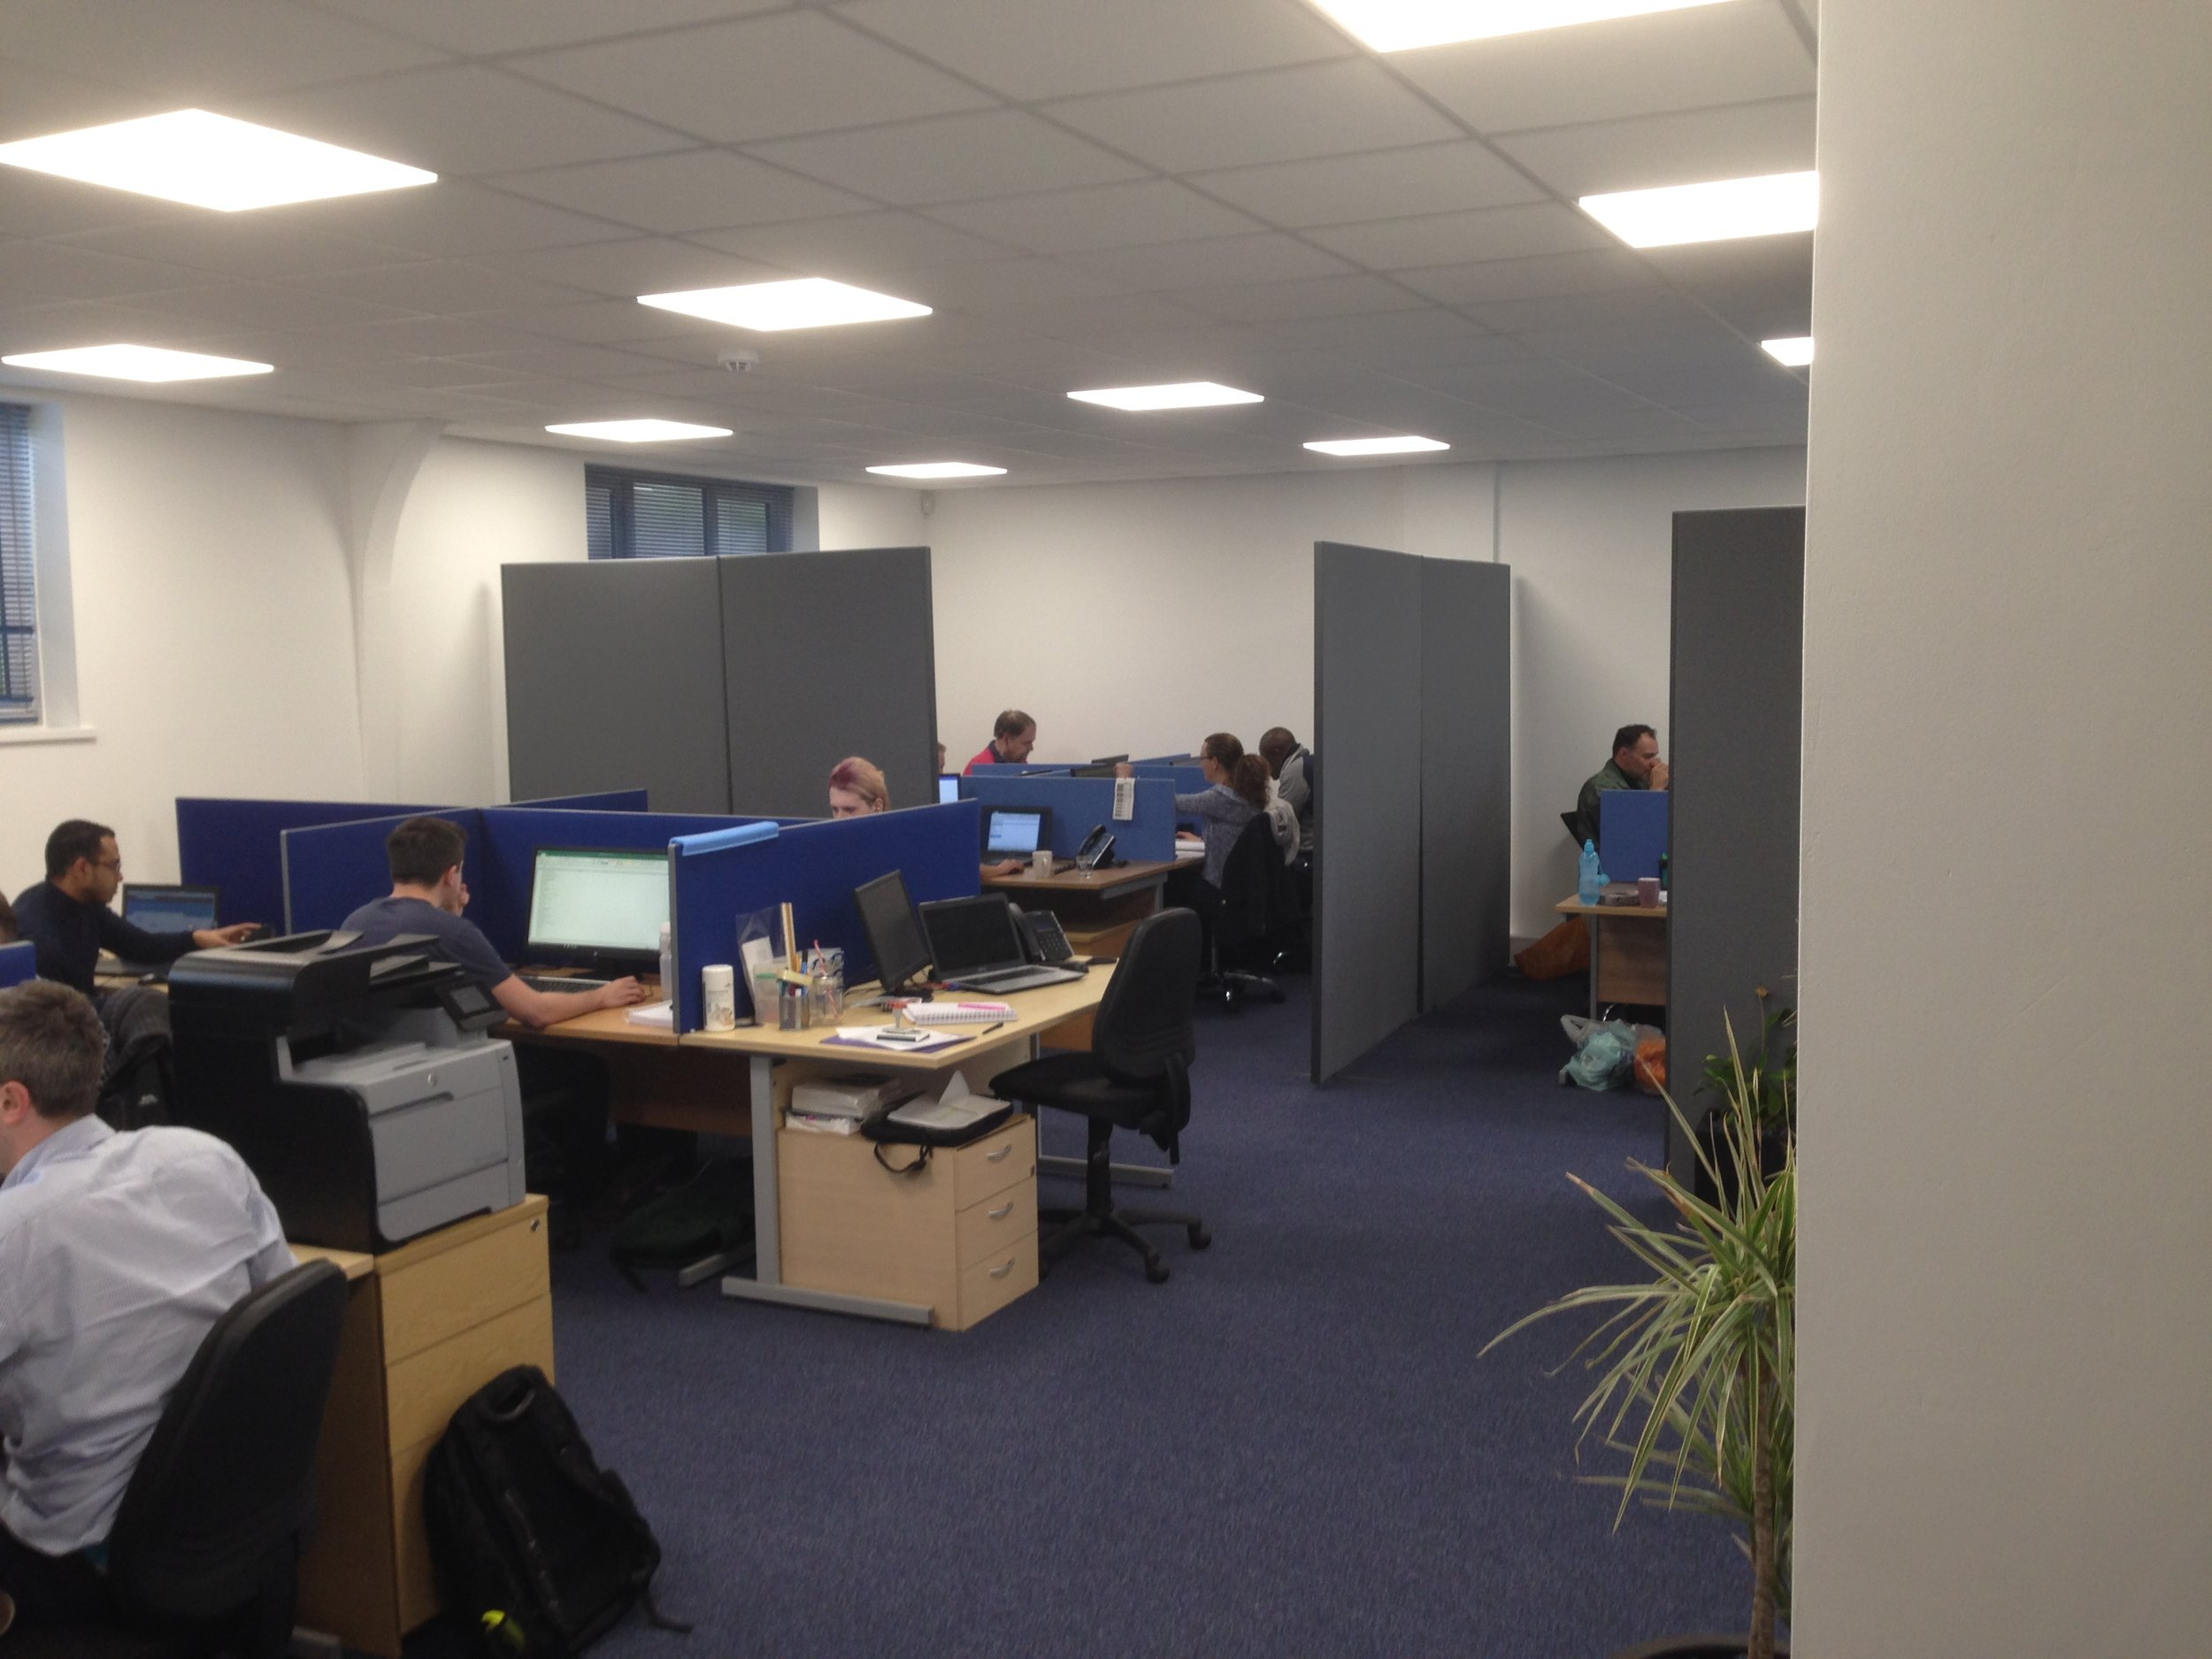 Concept design and office fit-out - Witley marketing sector-2